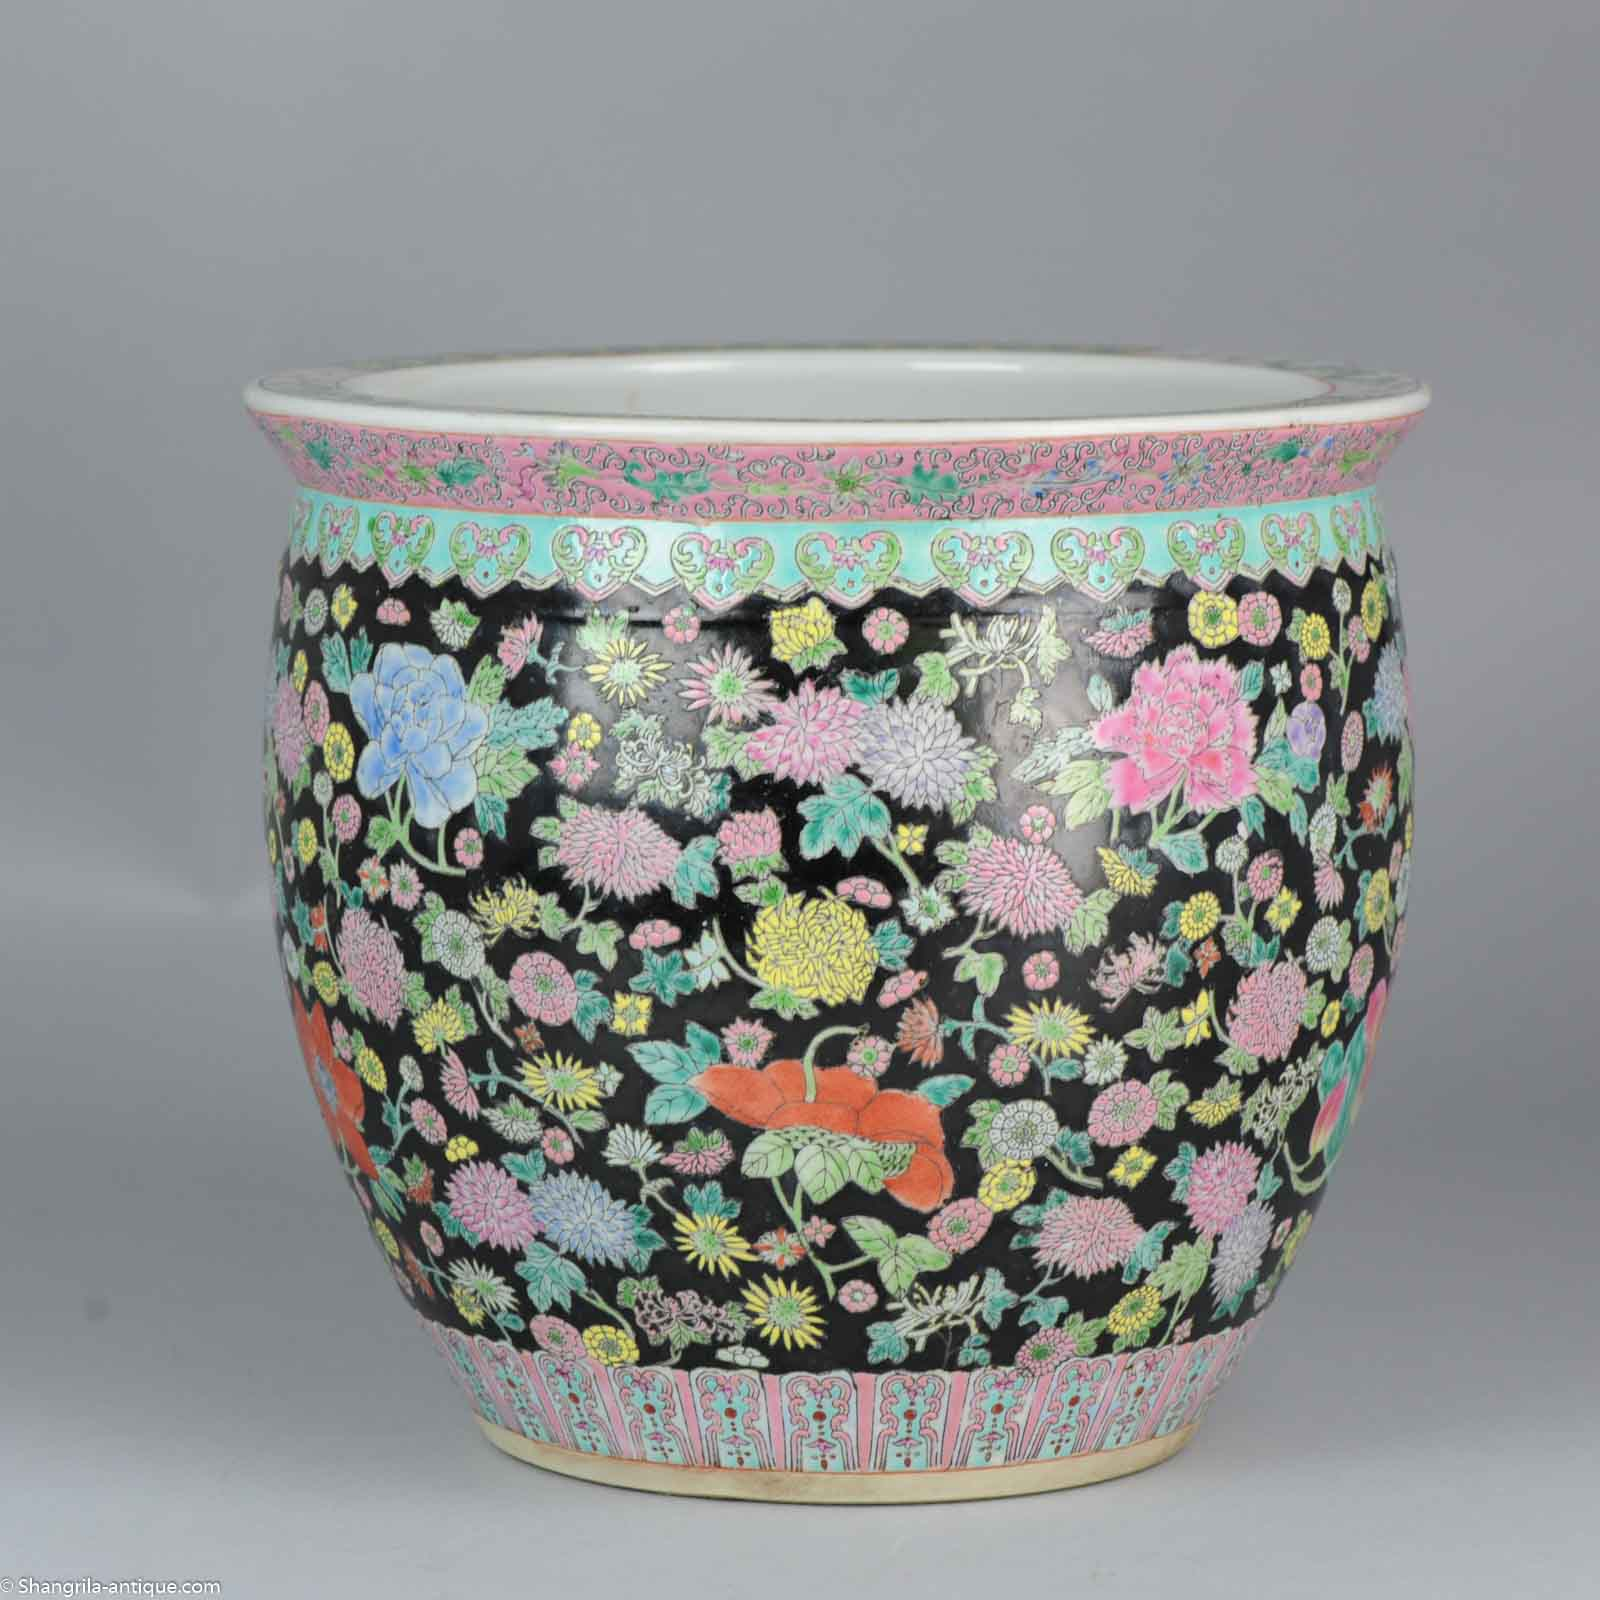 Great 20th C Chinese Porcelain Fishbowl Planter For Flower